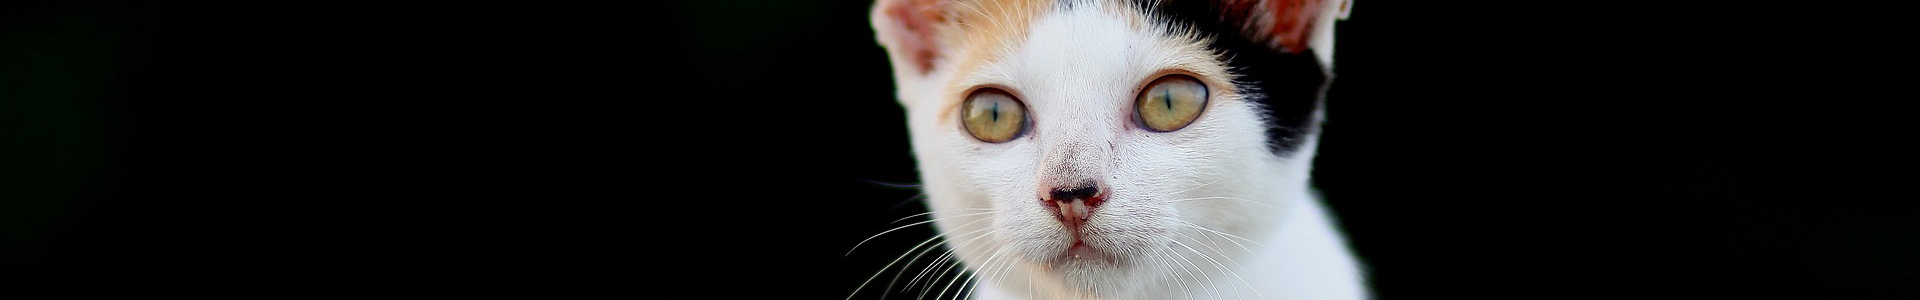 A young calico cat with a white face and yellow eyes looks out from a black background.